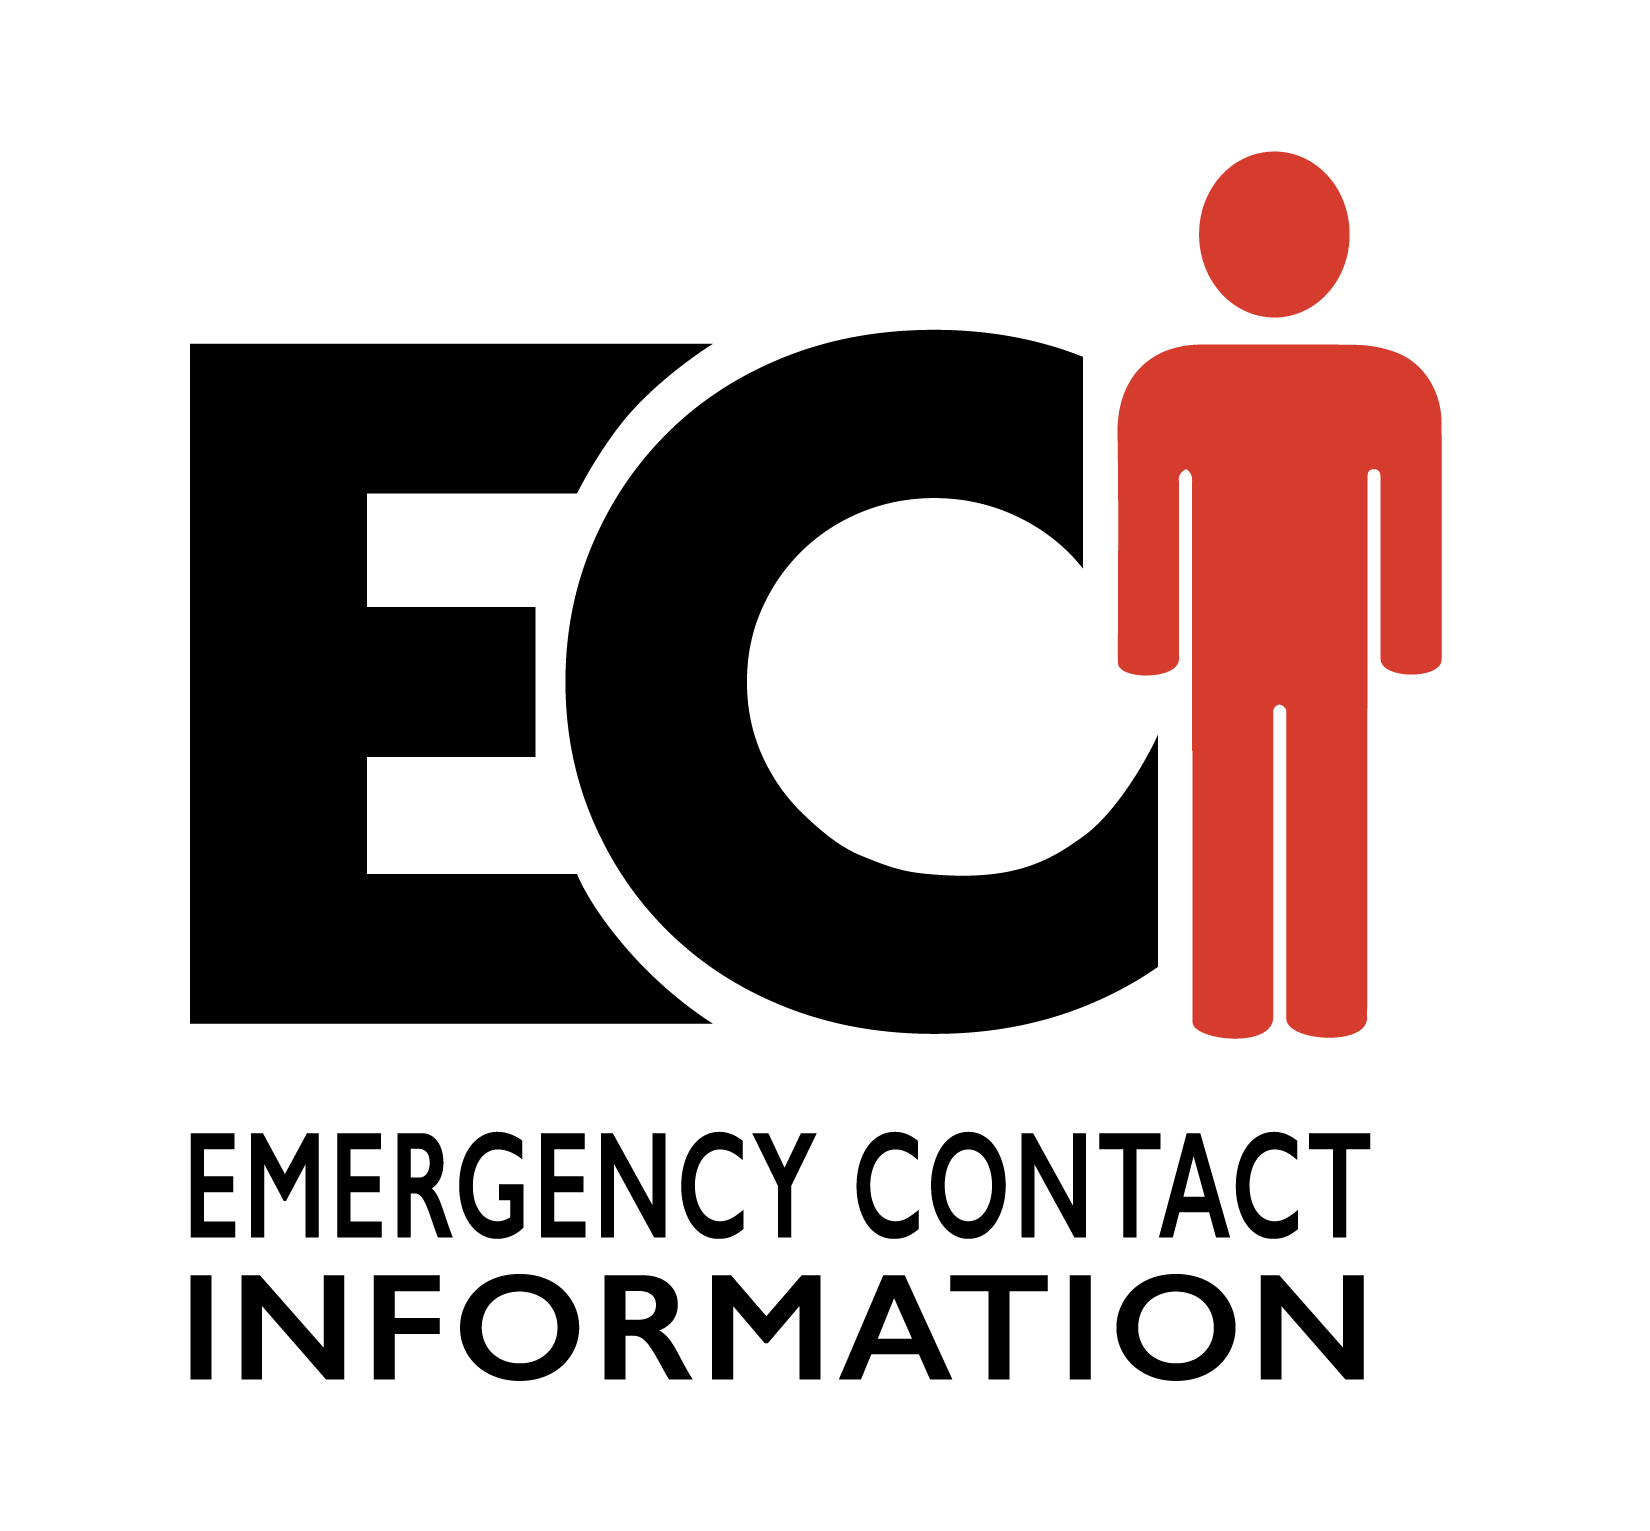 Hurricane clipart emergency preparedness. Contact information history florida